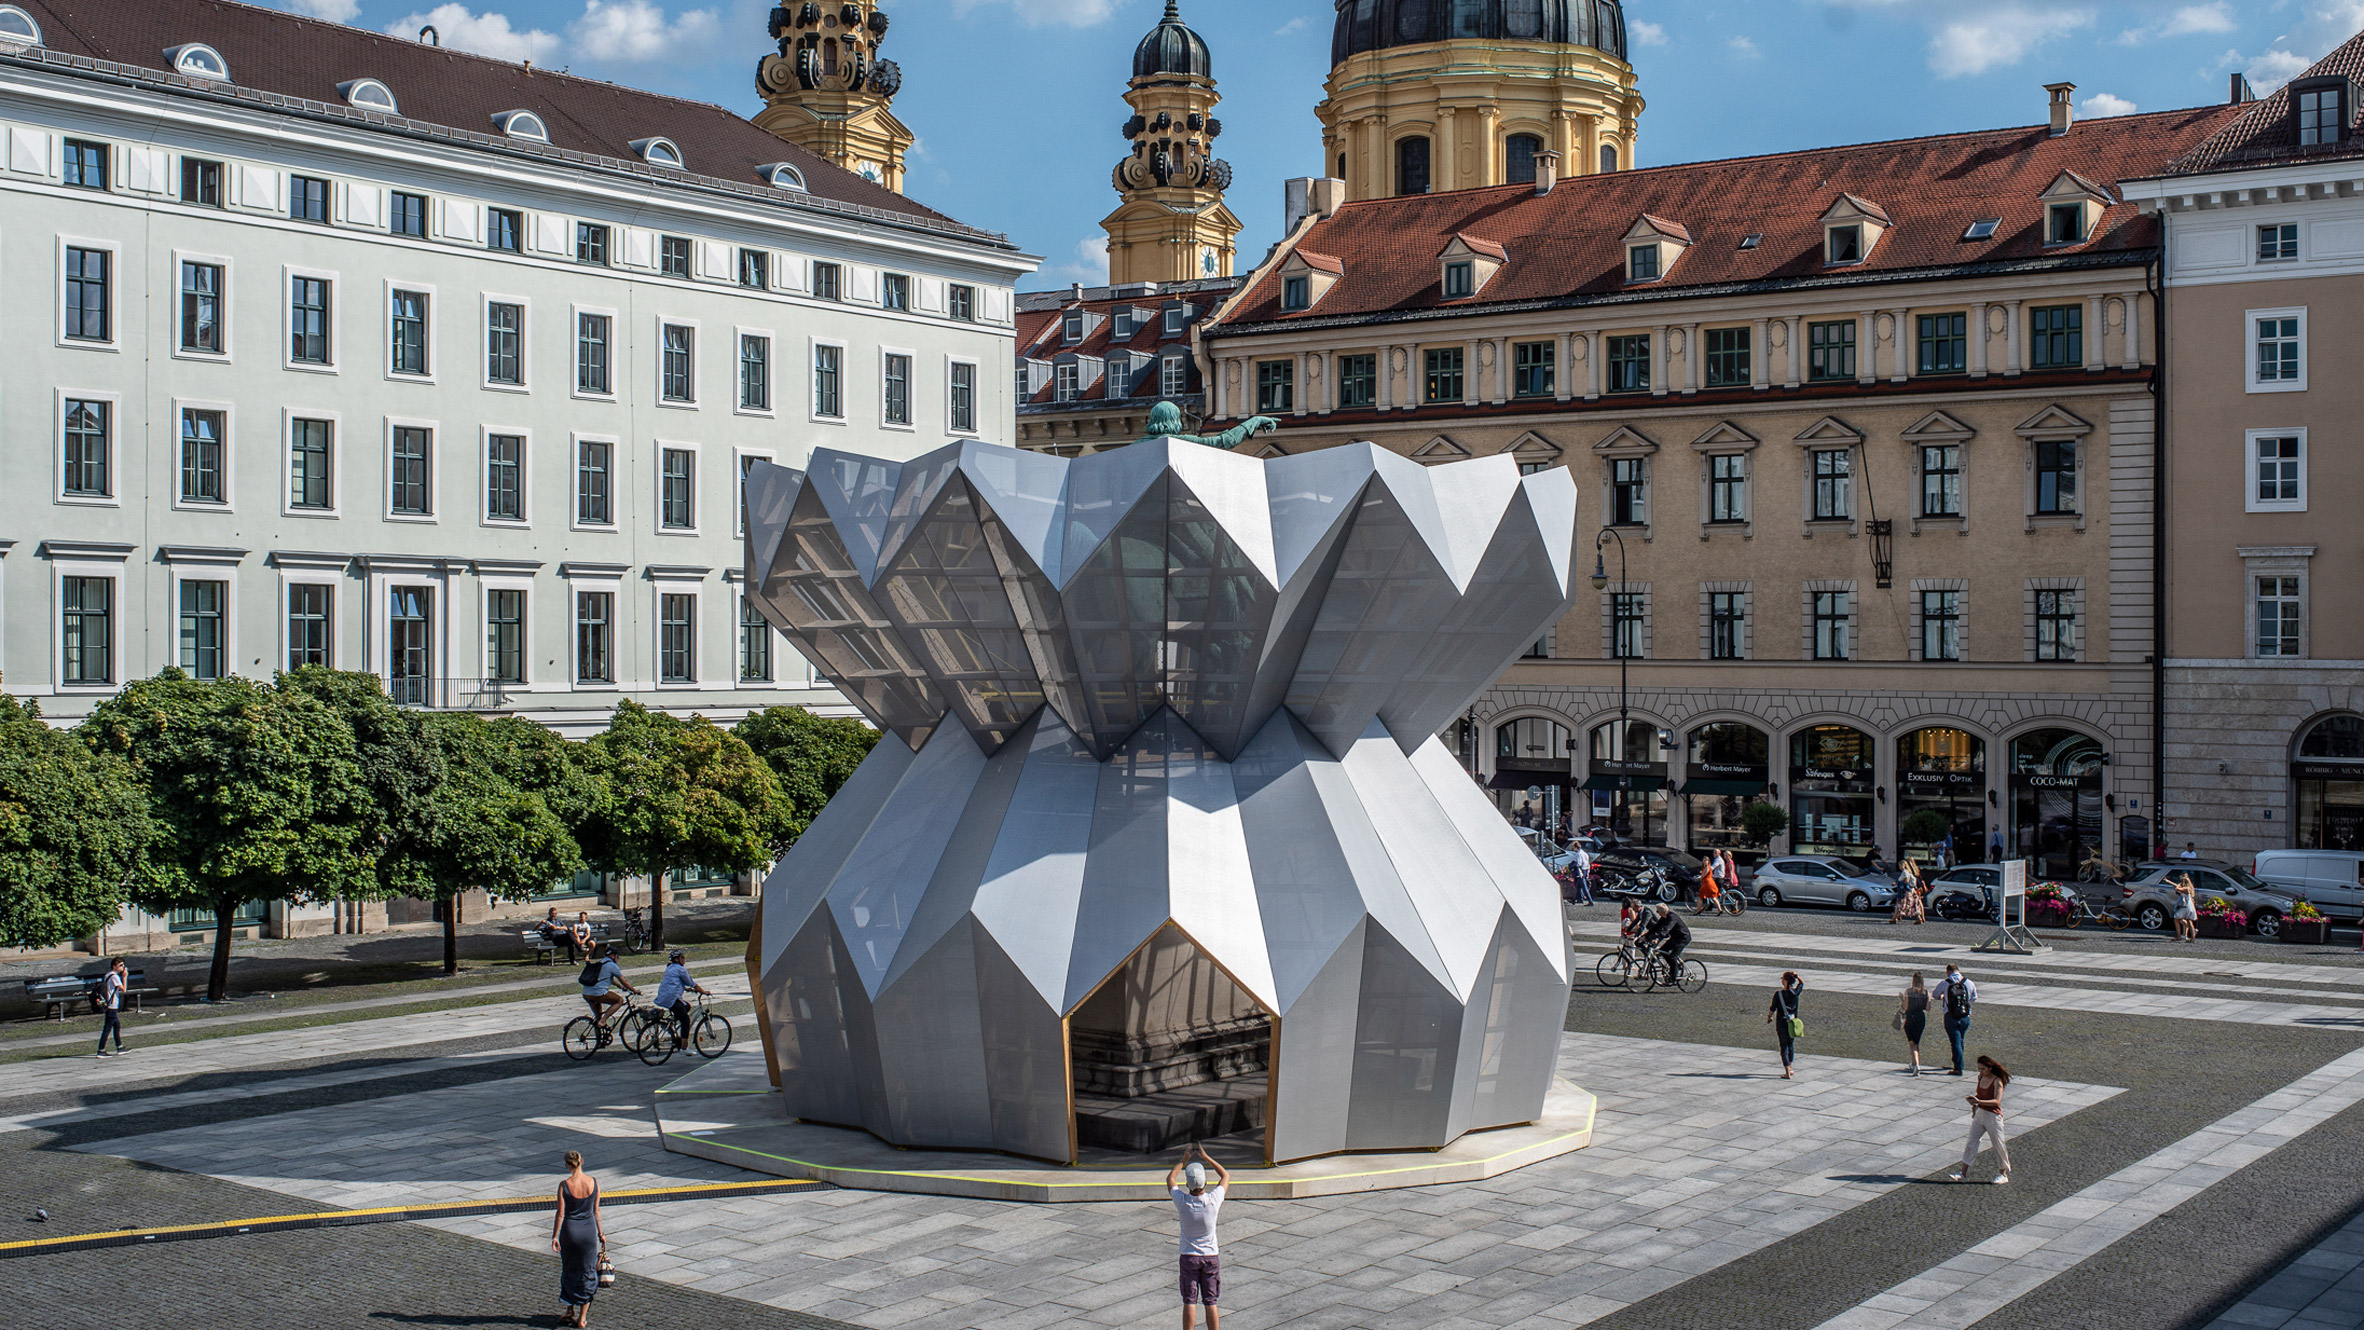 i-will-be-with-you-whatever-studio-morison-architecture-pavilions-munich-germany_dezeen_hero-1